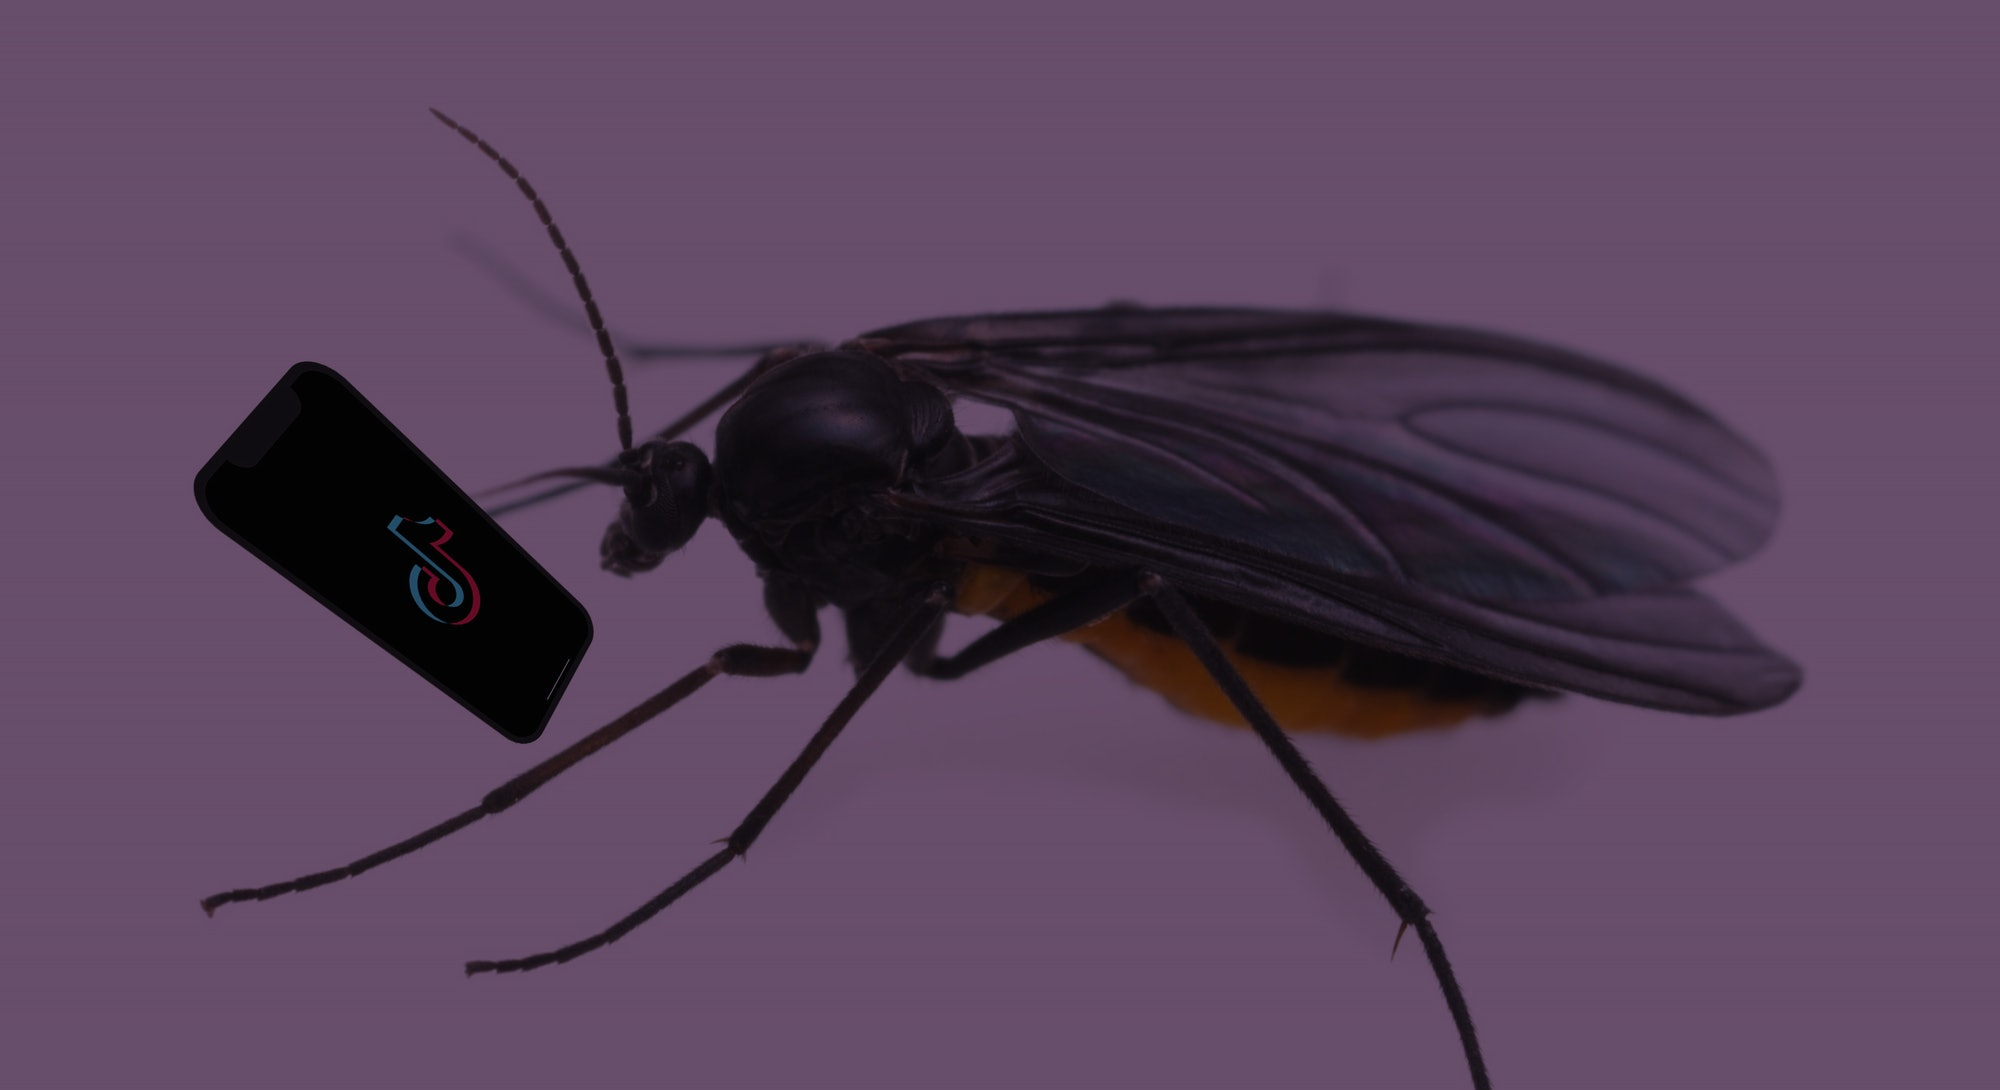 Photo illustration of a gnat looking at TikTok on its phone